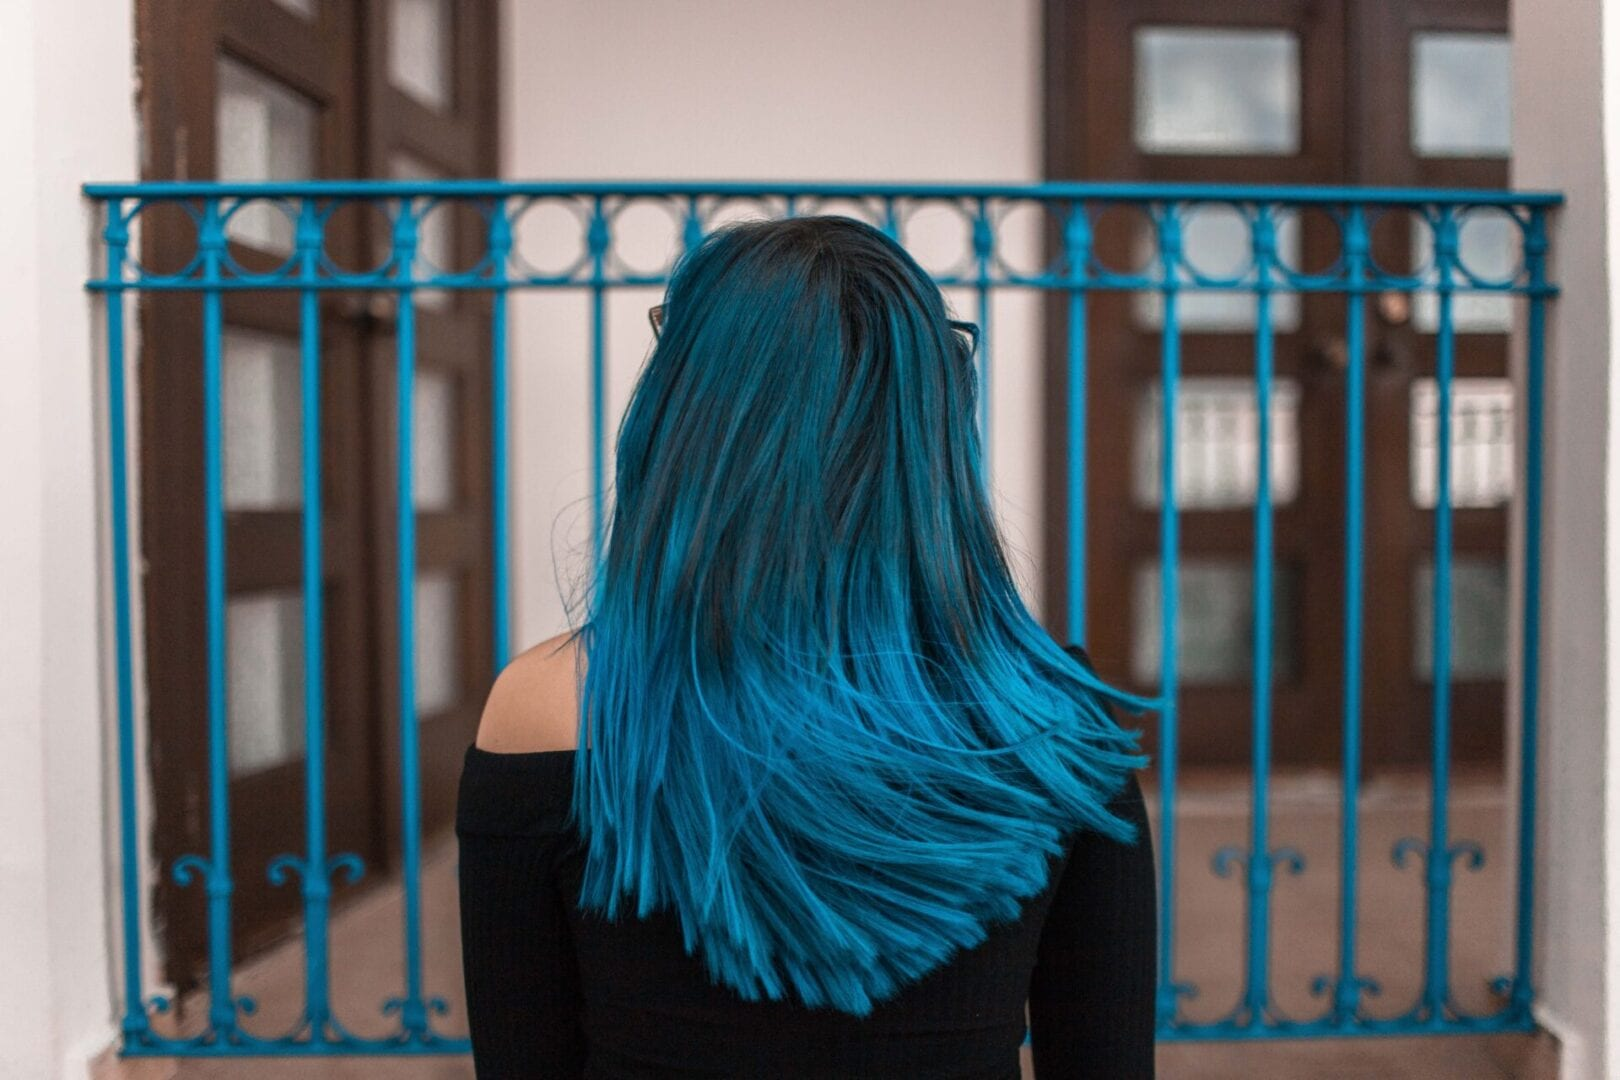 blue-haired-woman-facing-metal-fence-1510542